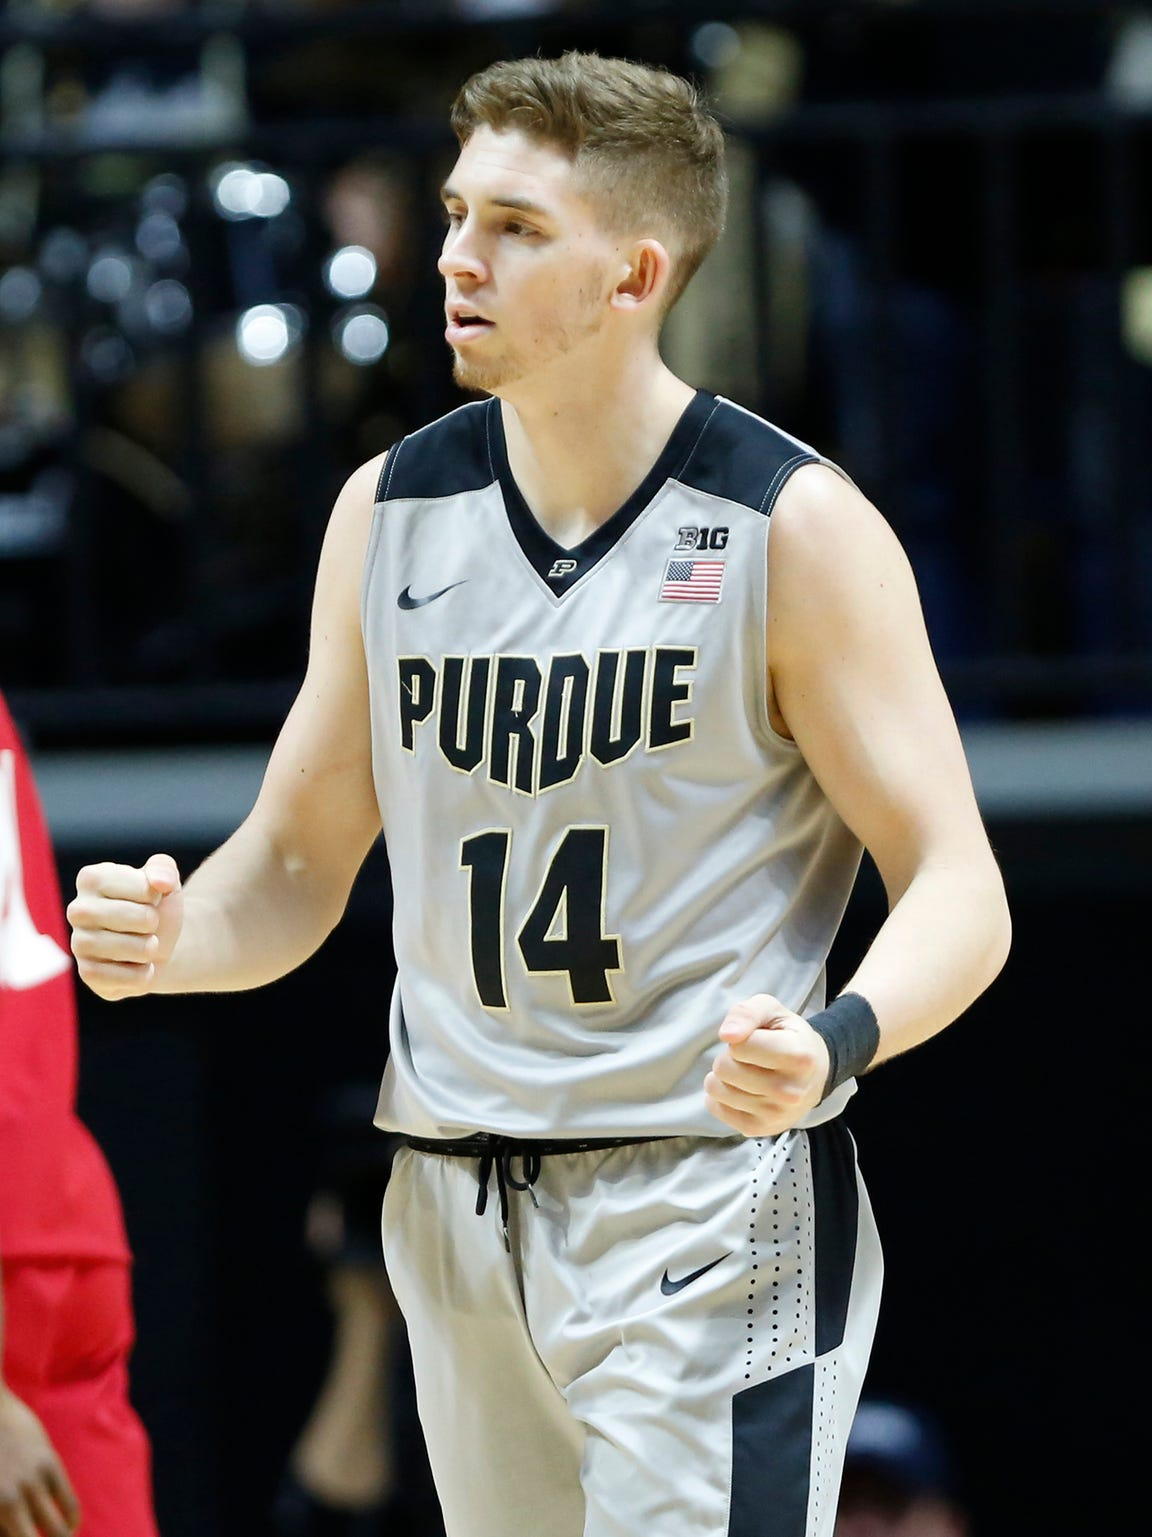 Ryan Cline is in the top 10 in Purdue's all-time 3-pointers attempted and made list.